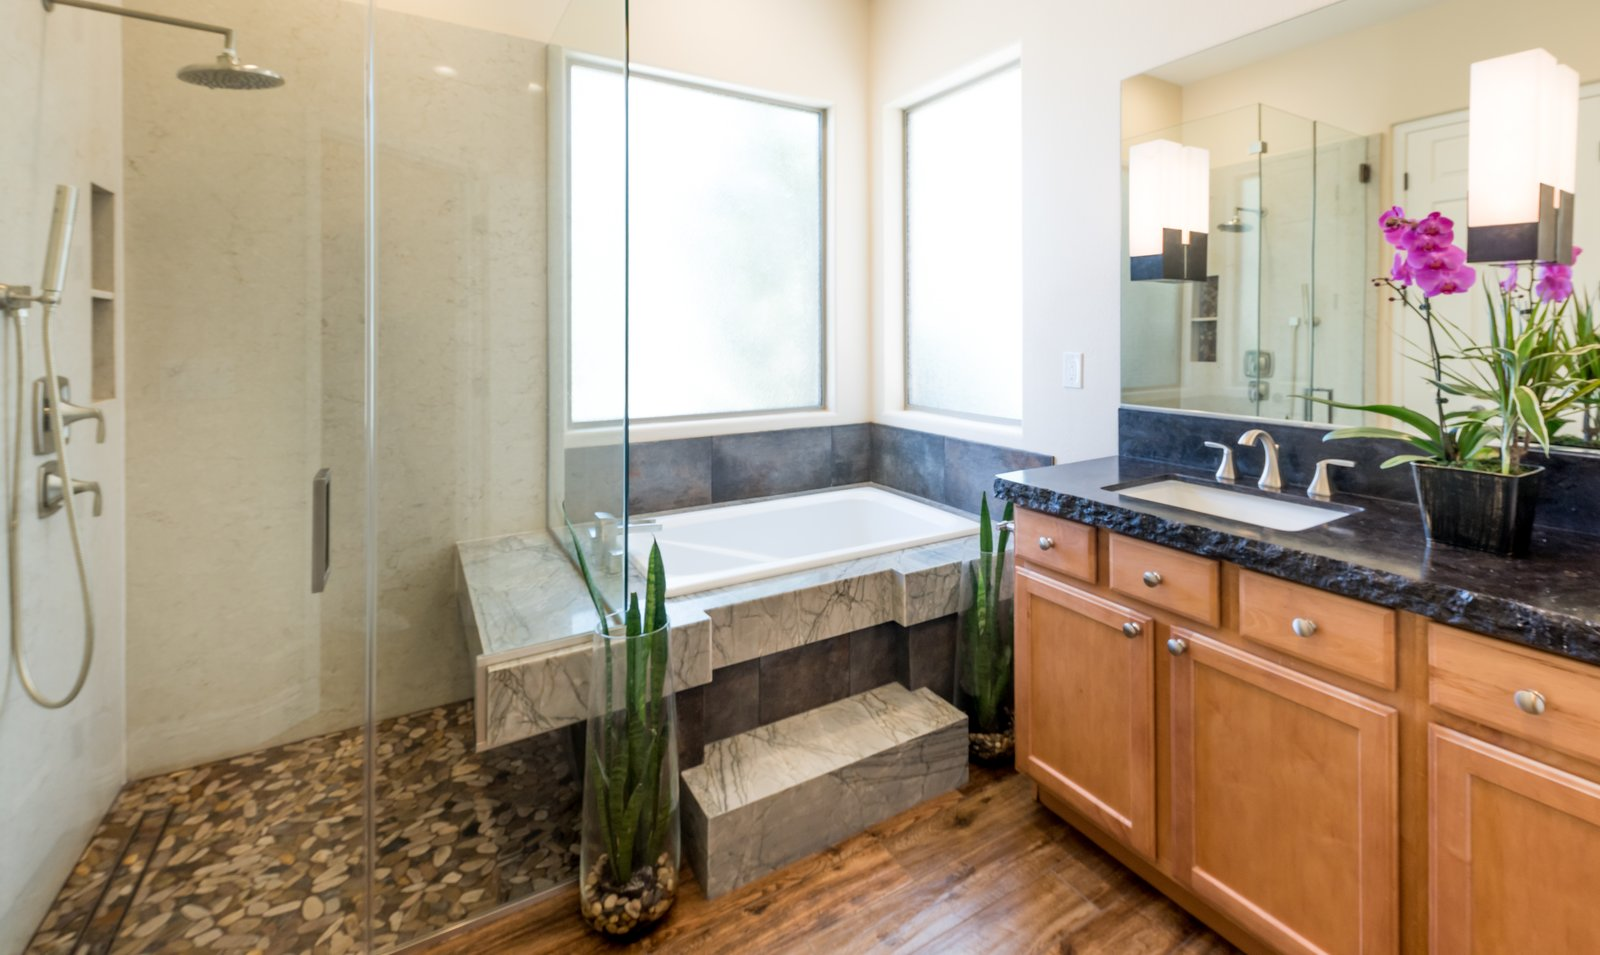 Bath Room, Quartzite Counter, Granite Counter, Engineered Quartz Counter, Undermount Sink, Porcelain Tile Floor, Drop In Tub, Enclosed Shower, Recessed Lighting, Ceiling Lighting, Stone Slab Wall, One Piece Toilet, and Pendant Lighting  Spa Escape